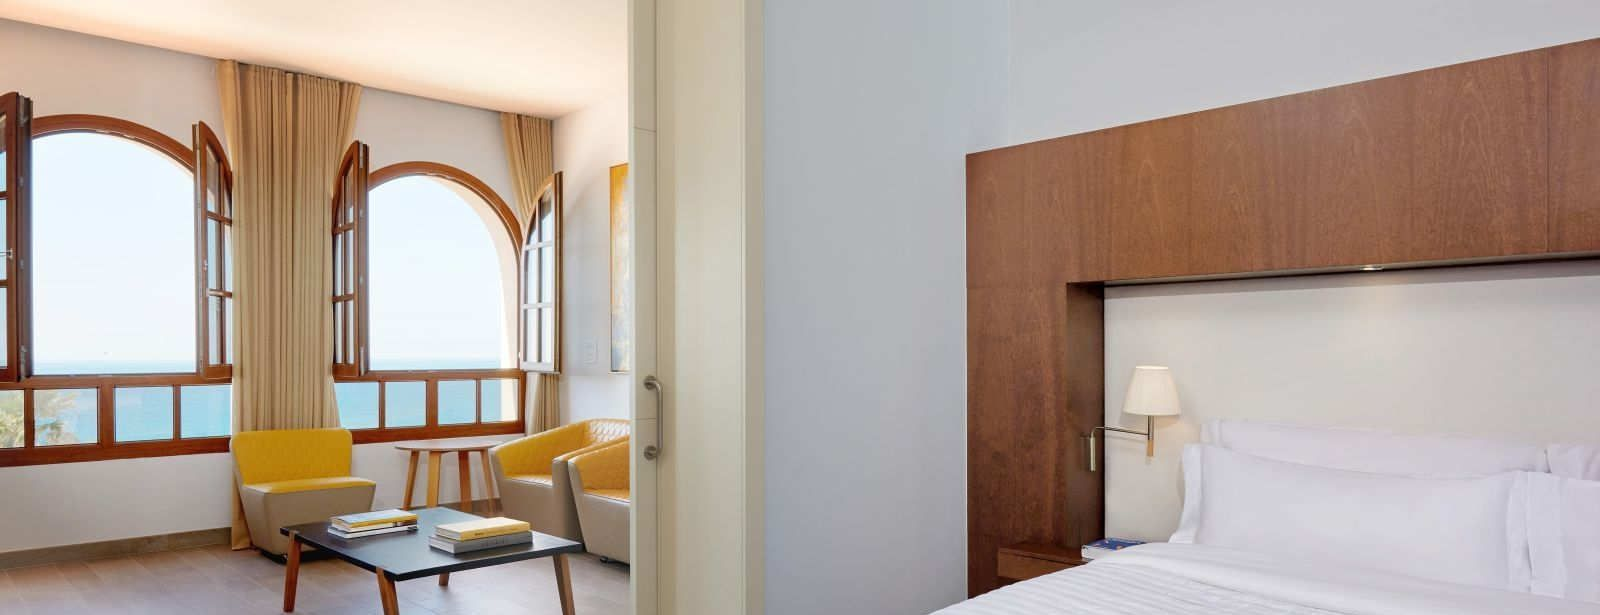 Stay in a prestige suite at Le Méridien Ra